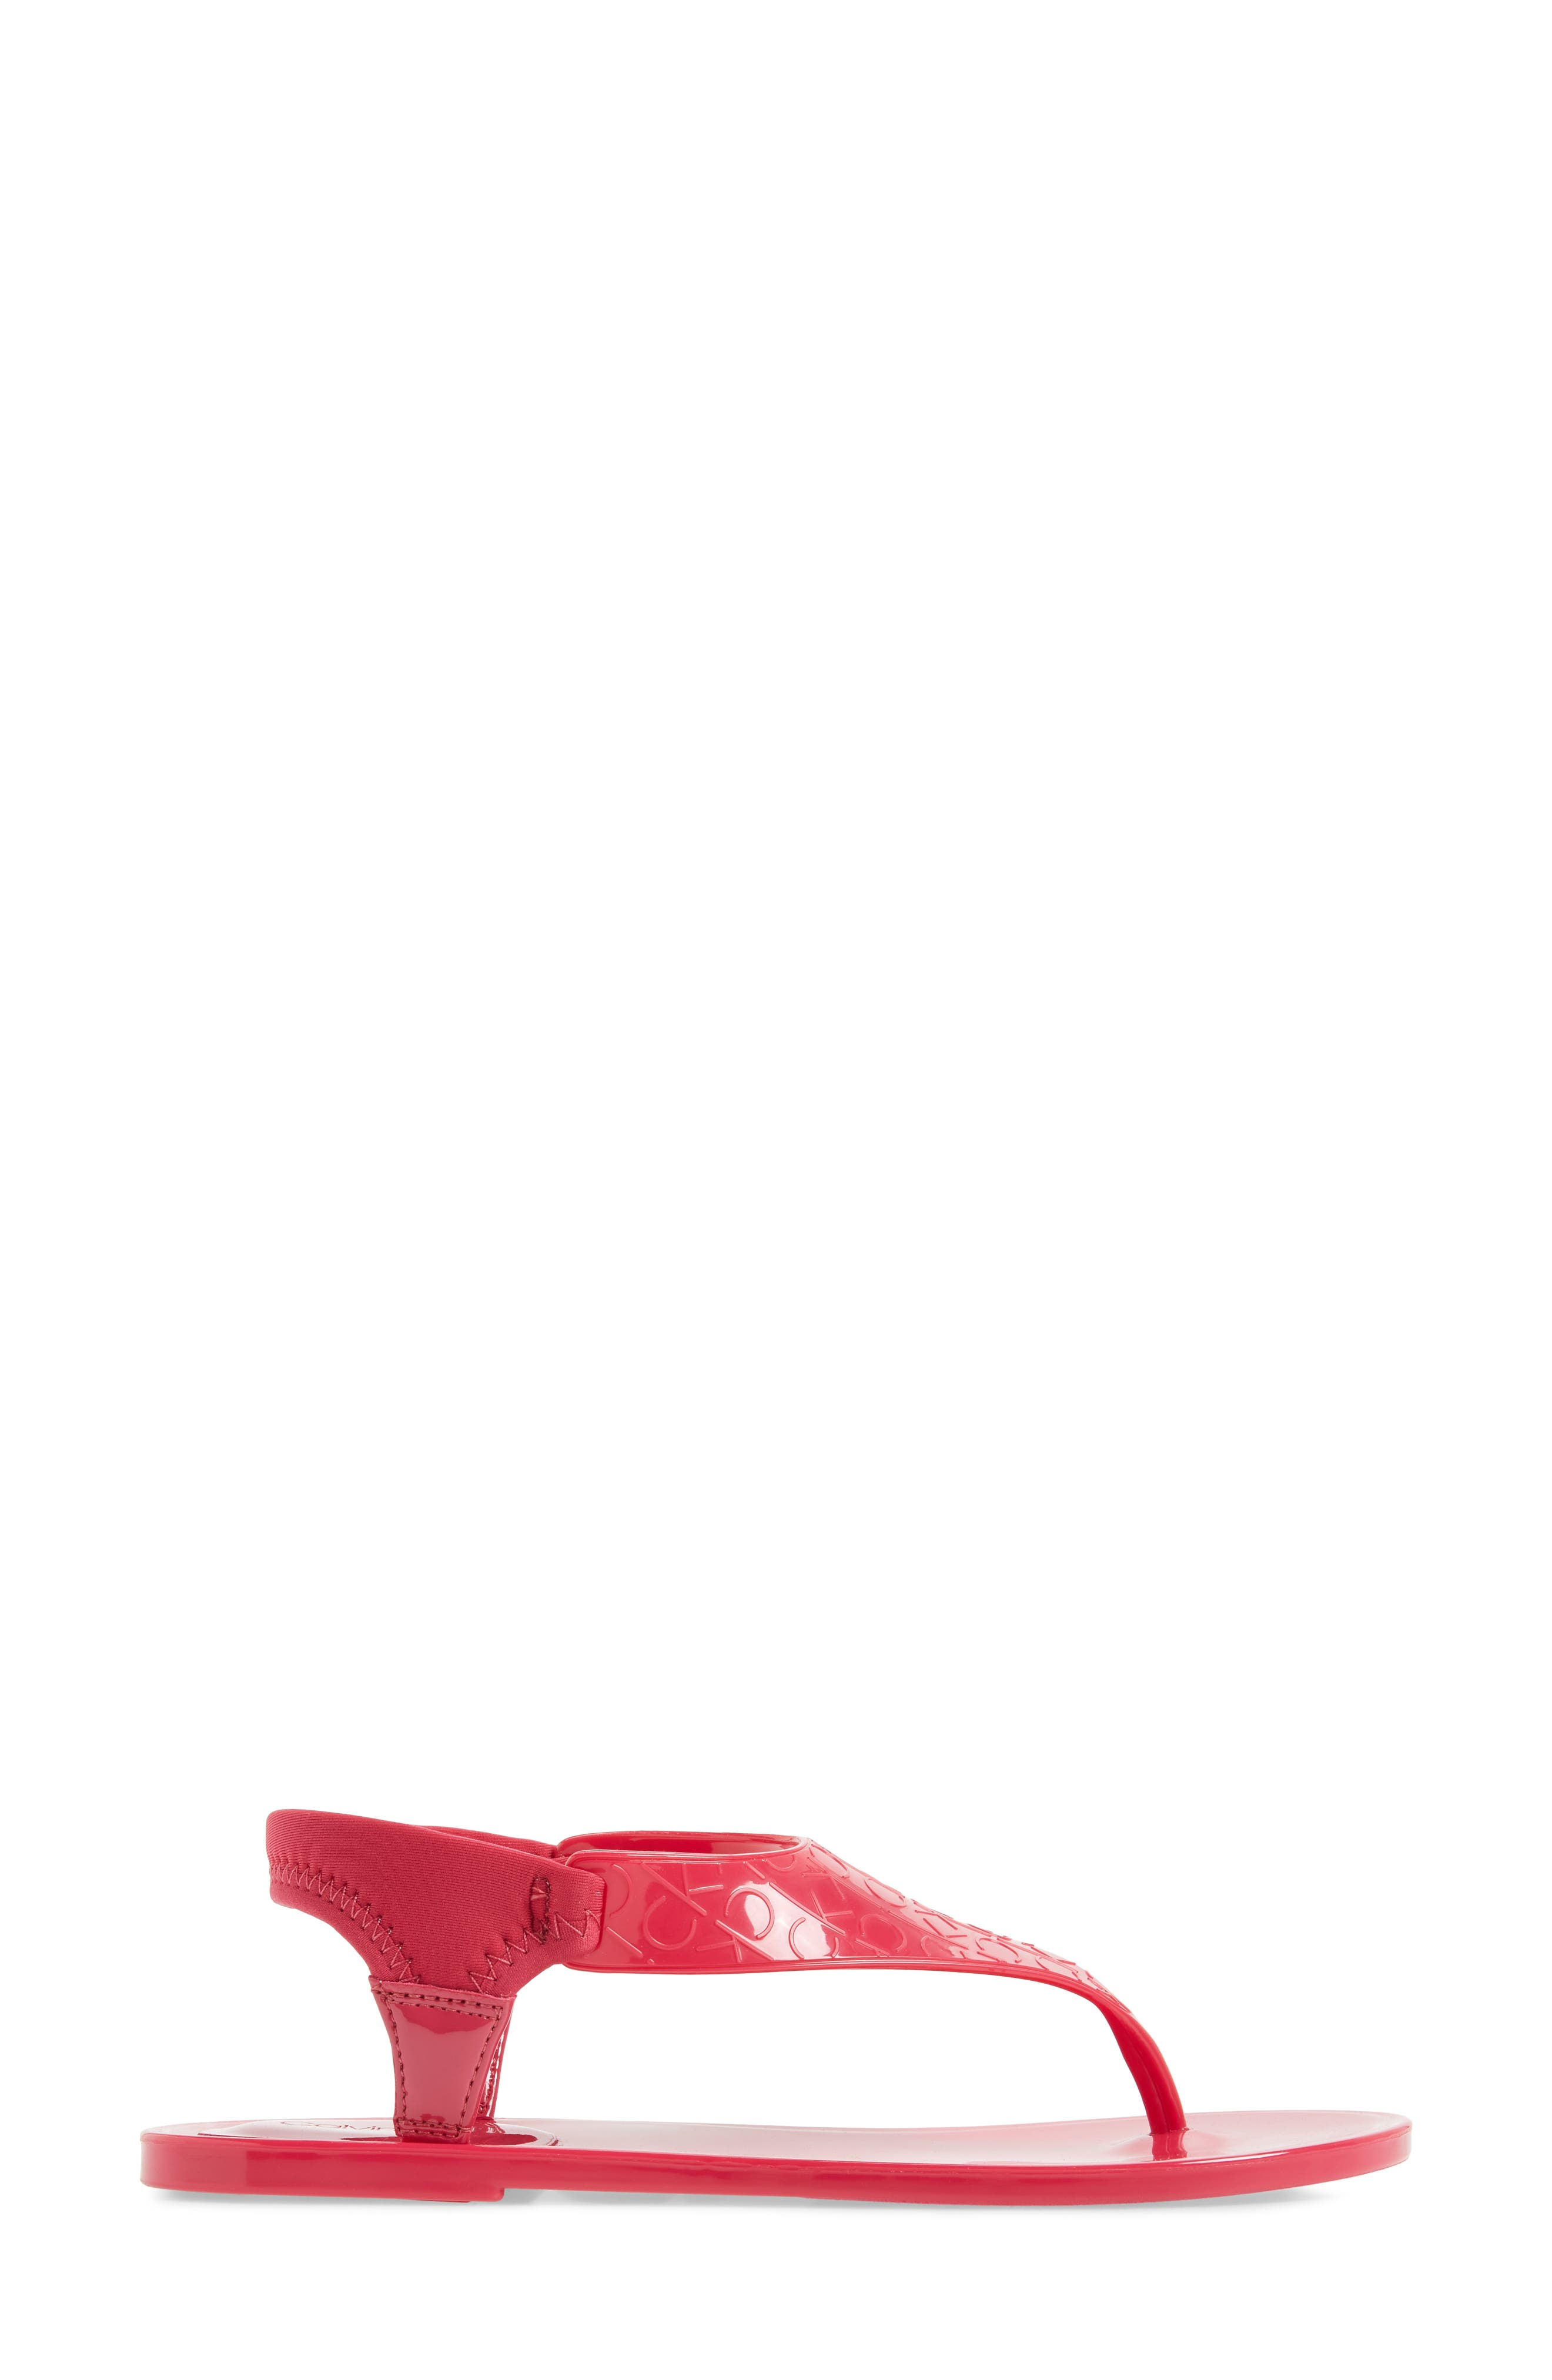 Janny Jelly Sandal,                             Alternate thumbnail 3, color,                             Hibiscus Pink